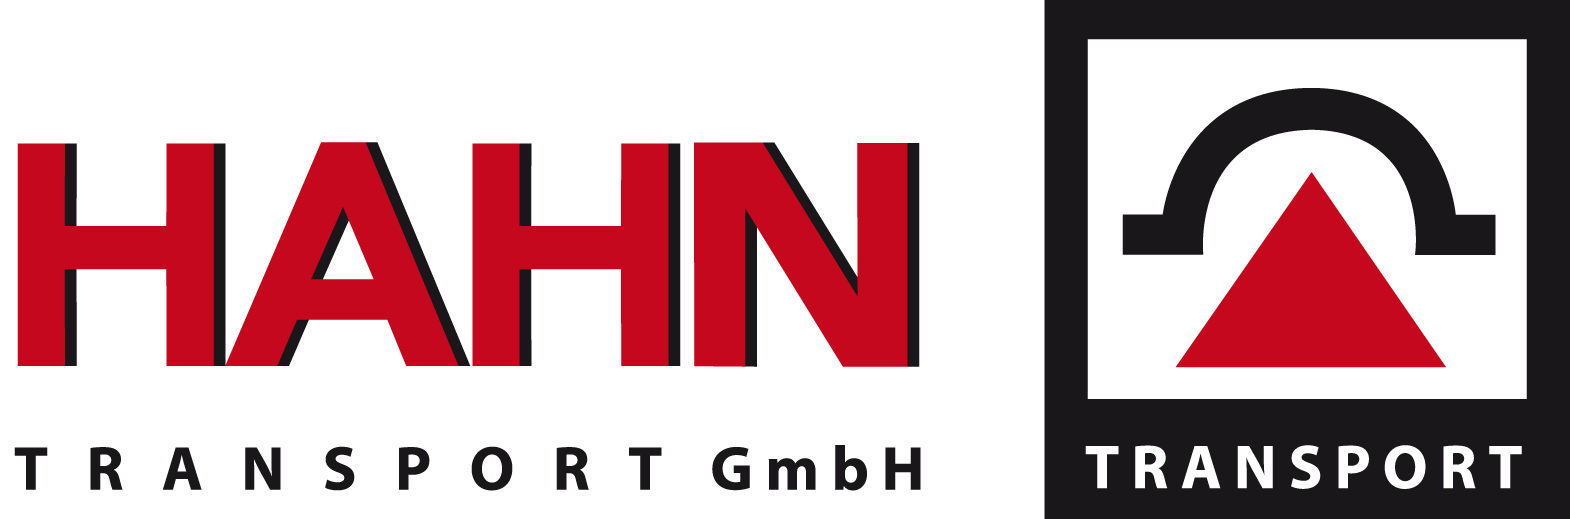 https://www.hahn.de/wp-content/uploads/2017/05/Logo-Hahn_Transport_RGB-10_17.png